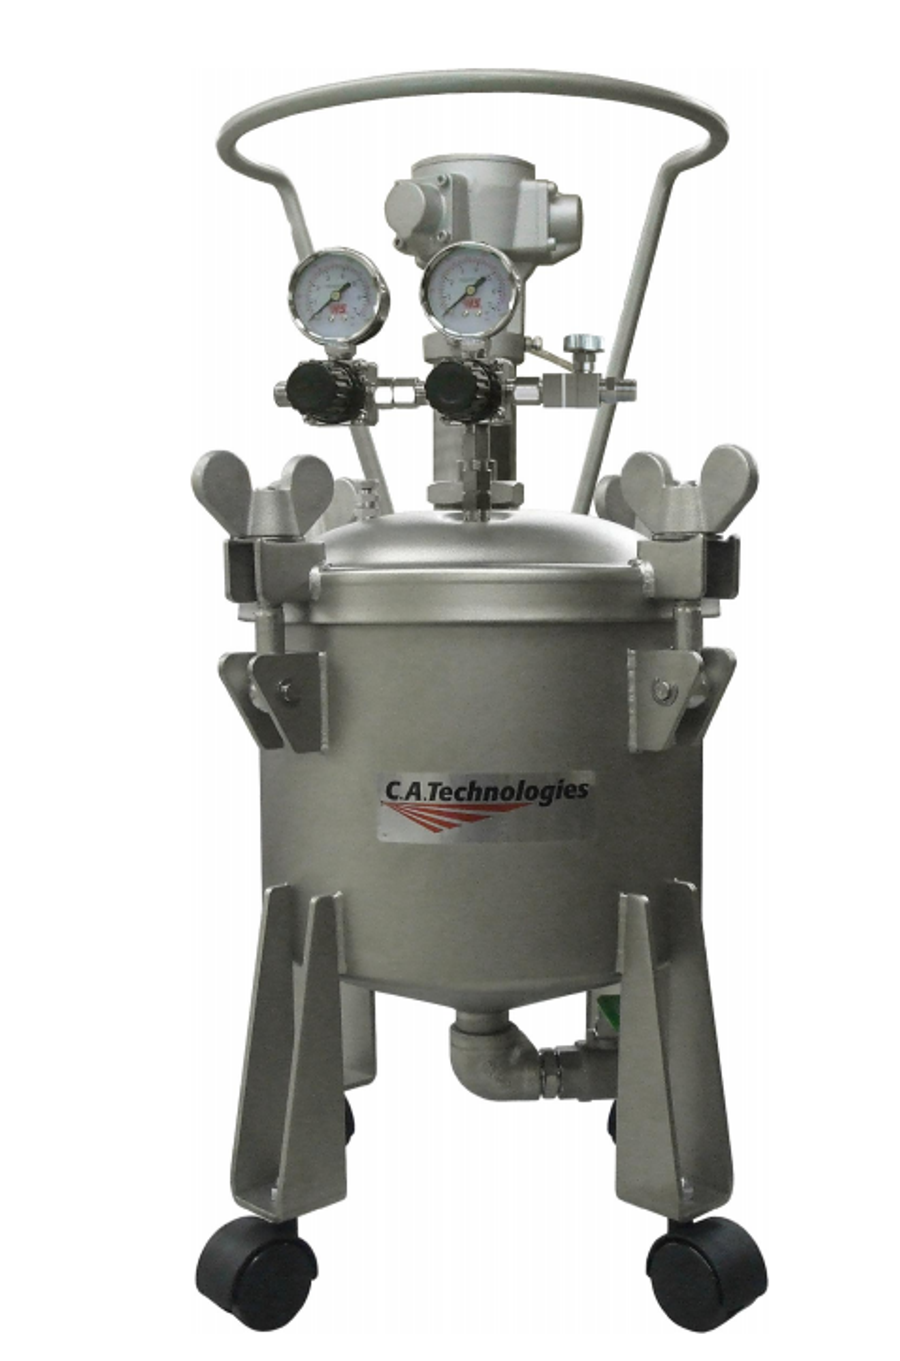 C.A. Technologies 51-914 Stainless Steel Air Agitated Bottom Outlet Pressure Tank 2.5Gal